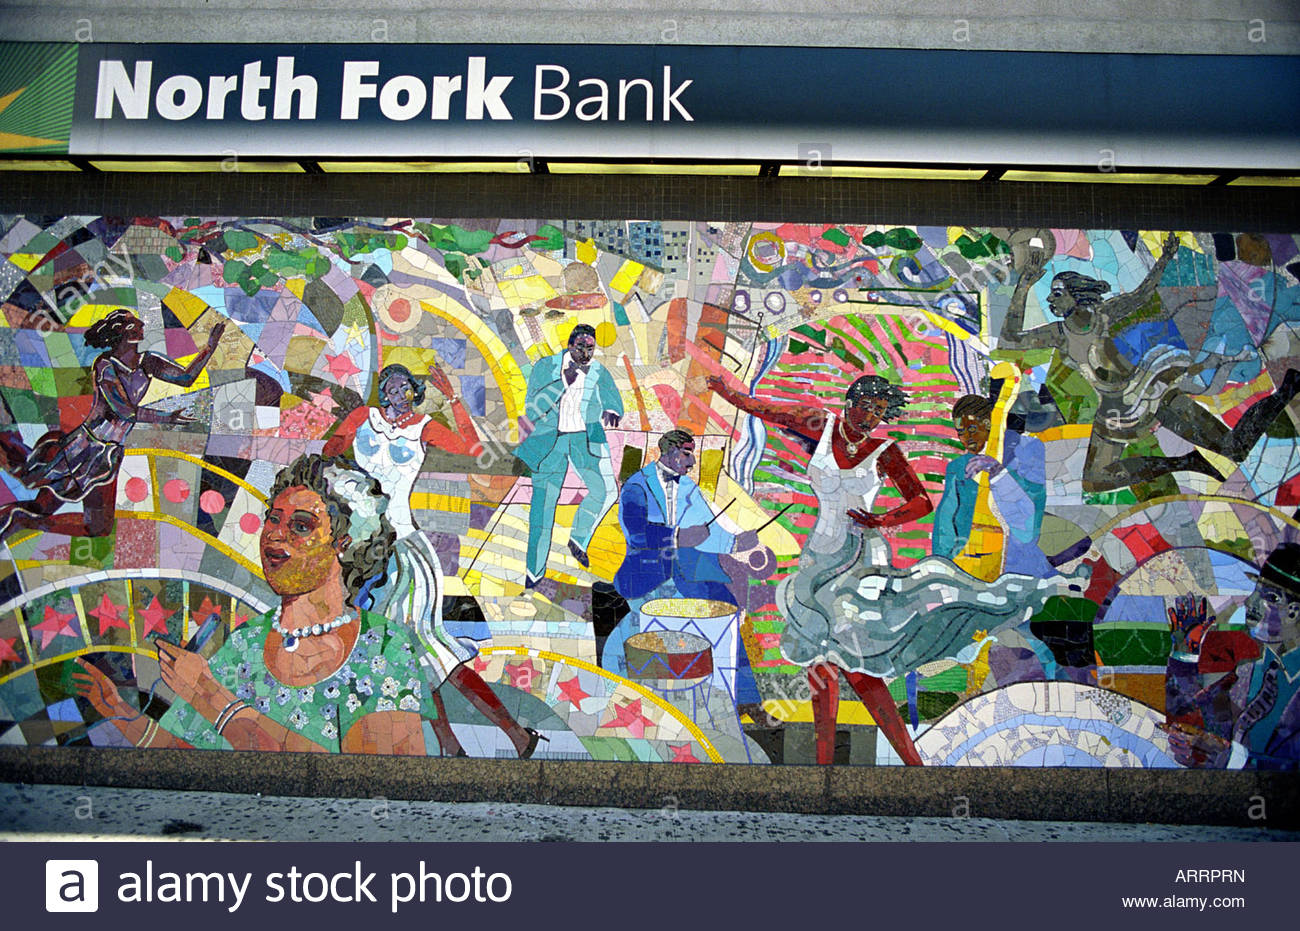 Mosiac on wall of North Fork Bank in Harlem New York - Stock Image